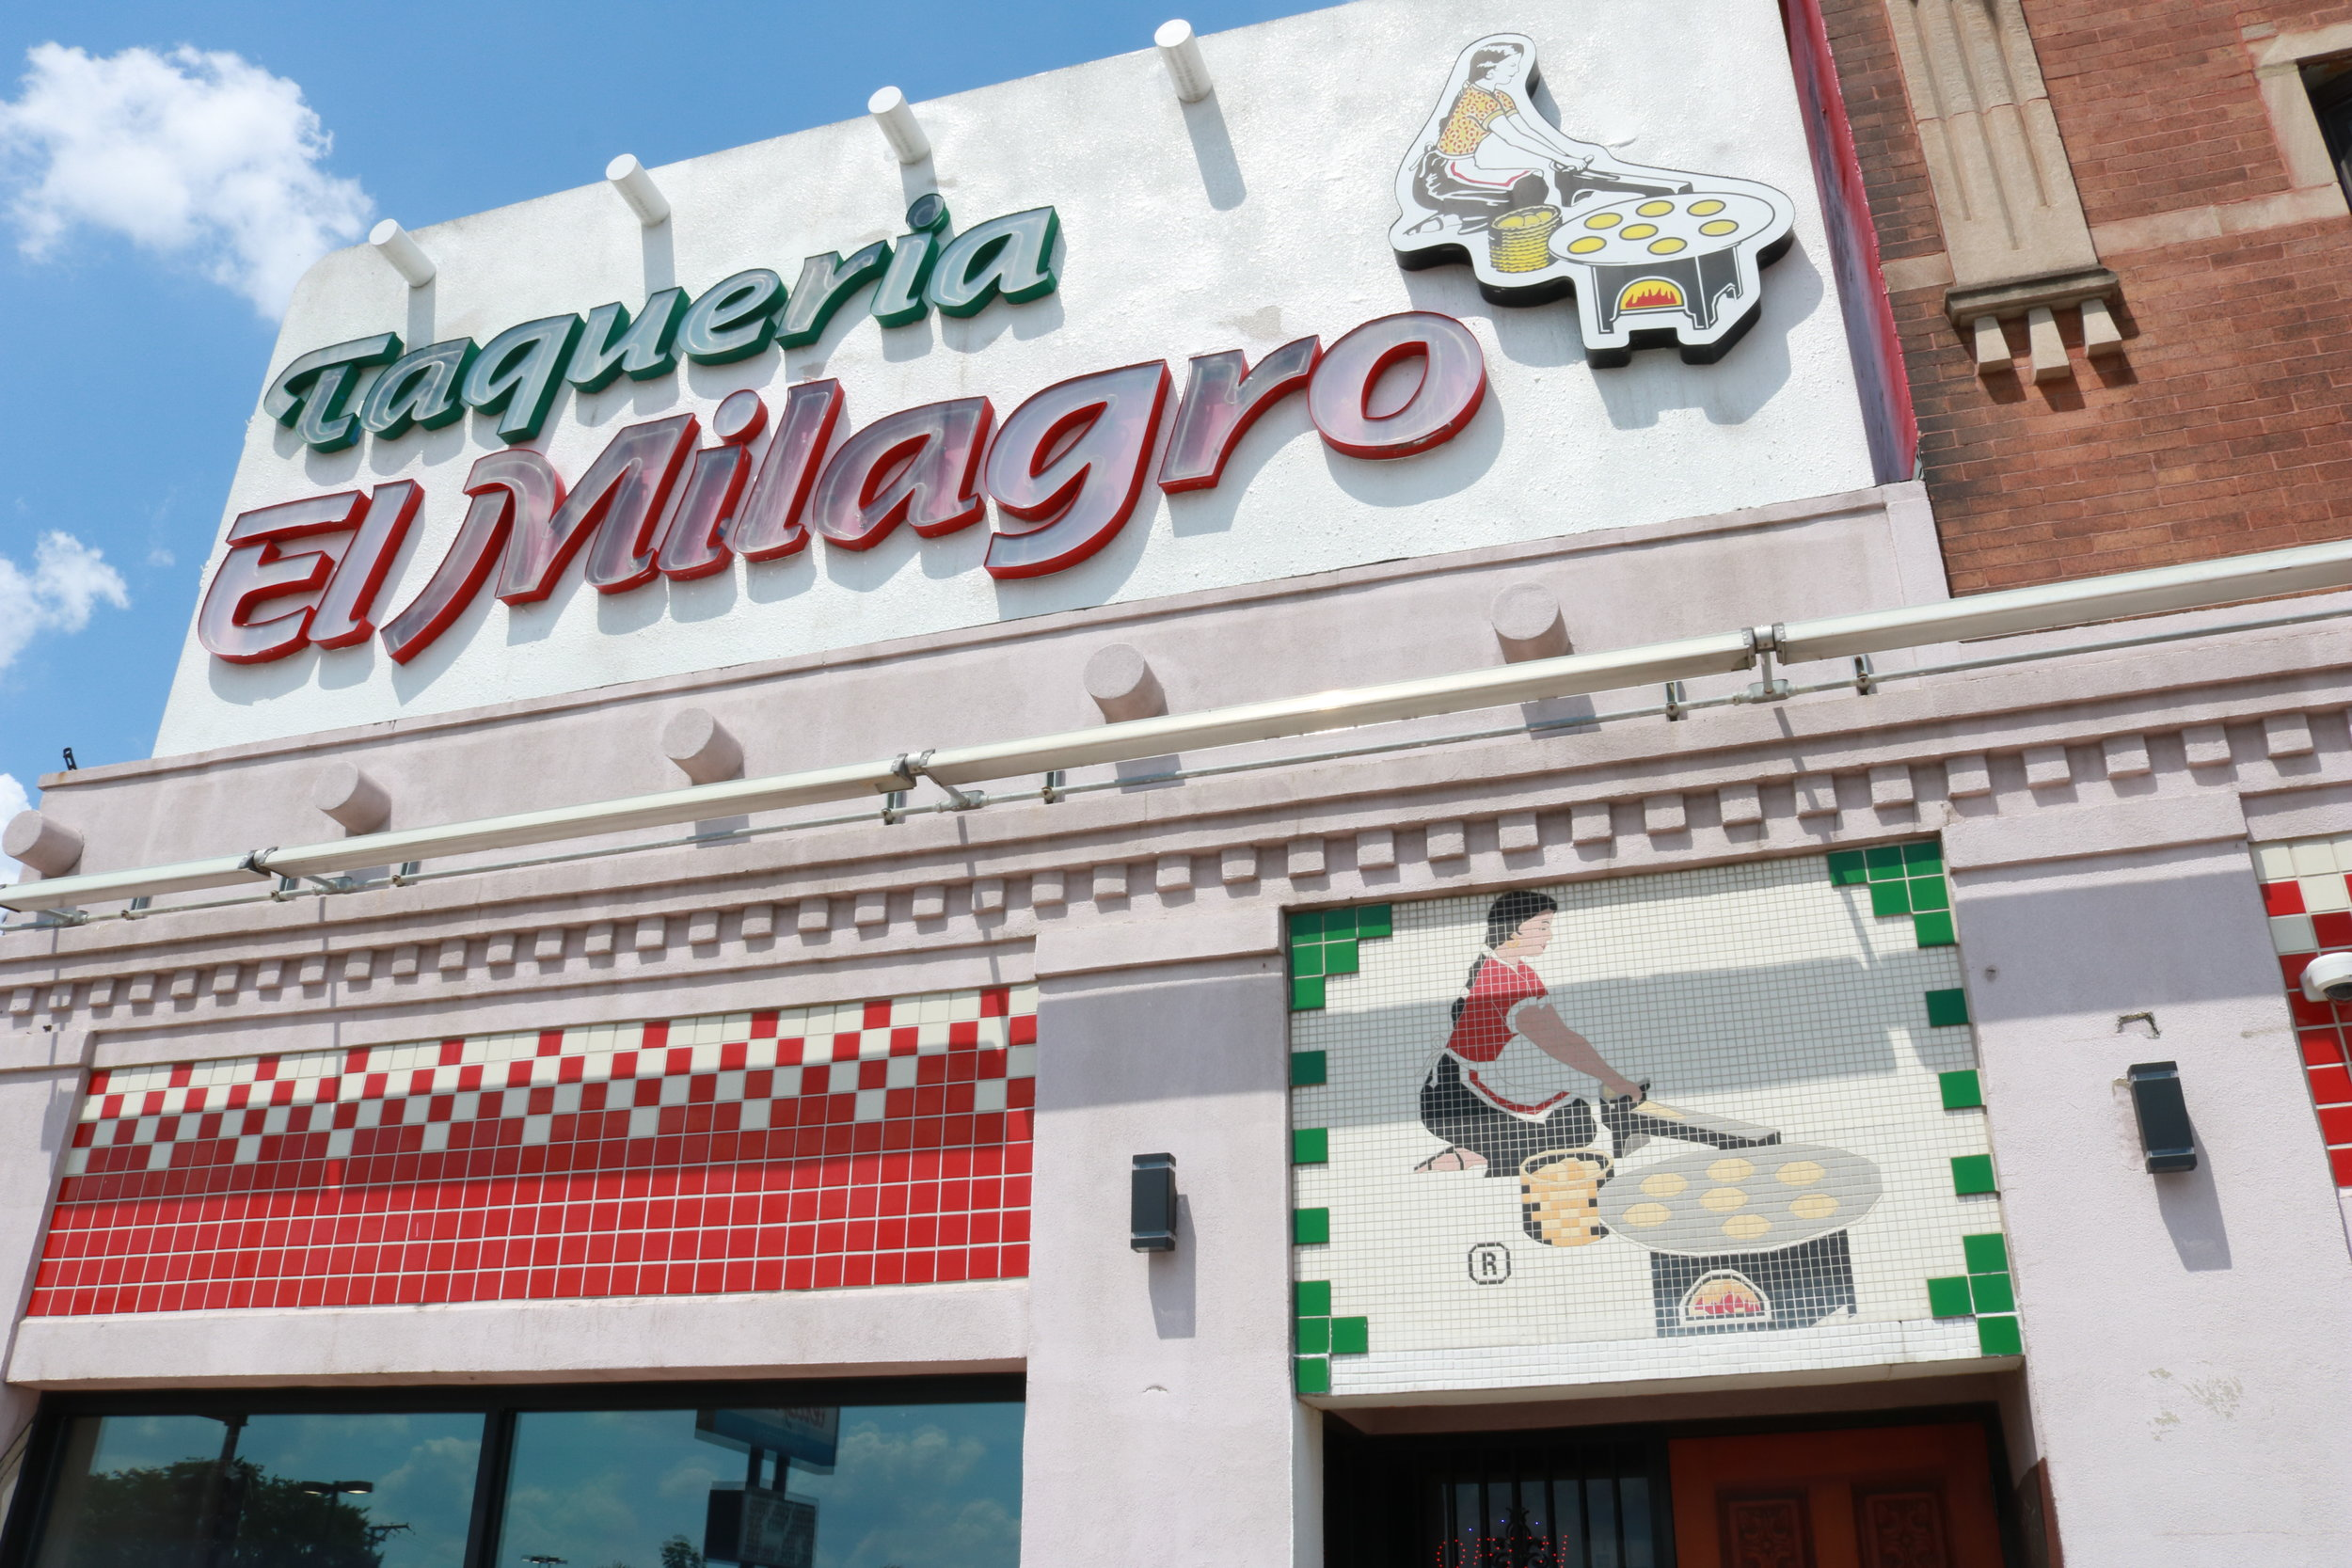 Taqueria El Milagro located in 3050 W. 26th St, Chicago, IL 60623, the Little Village neighborhood. Photo by Esafania Navarrate